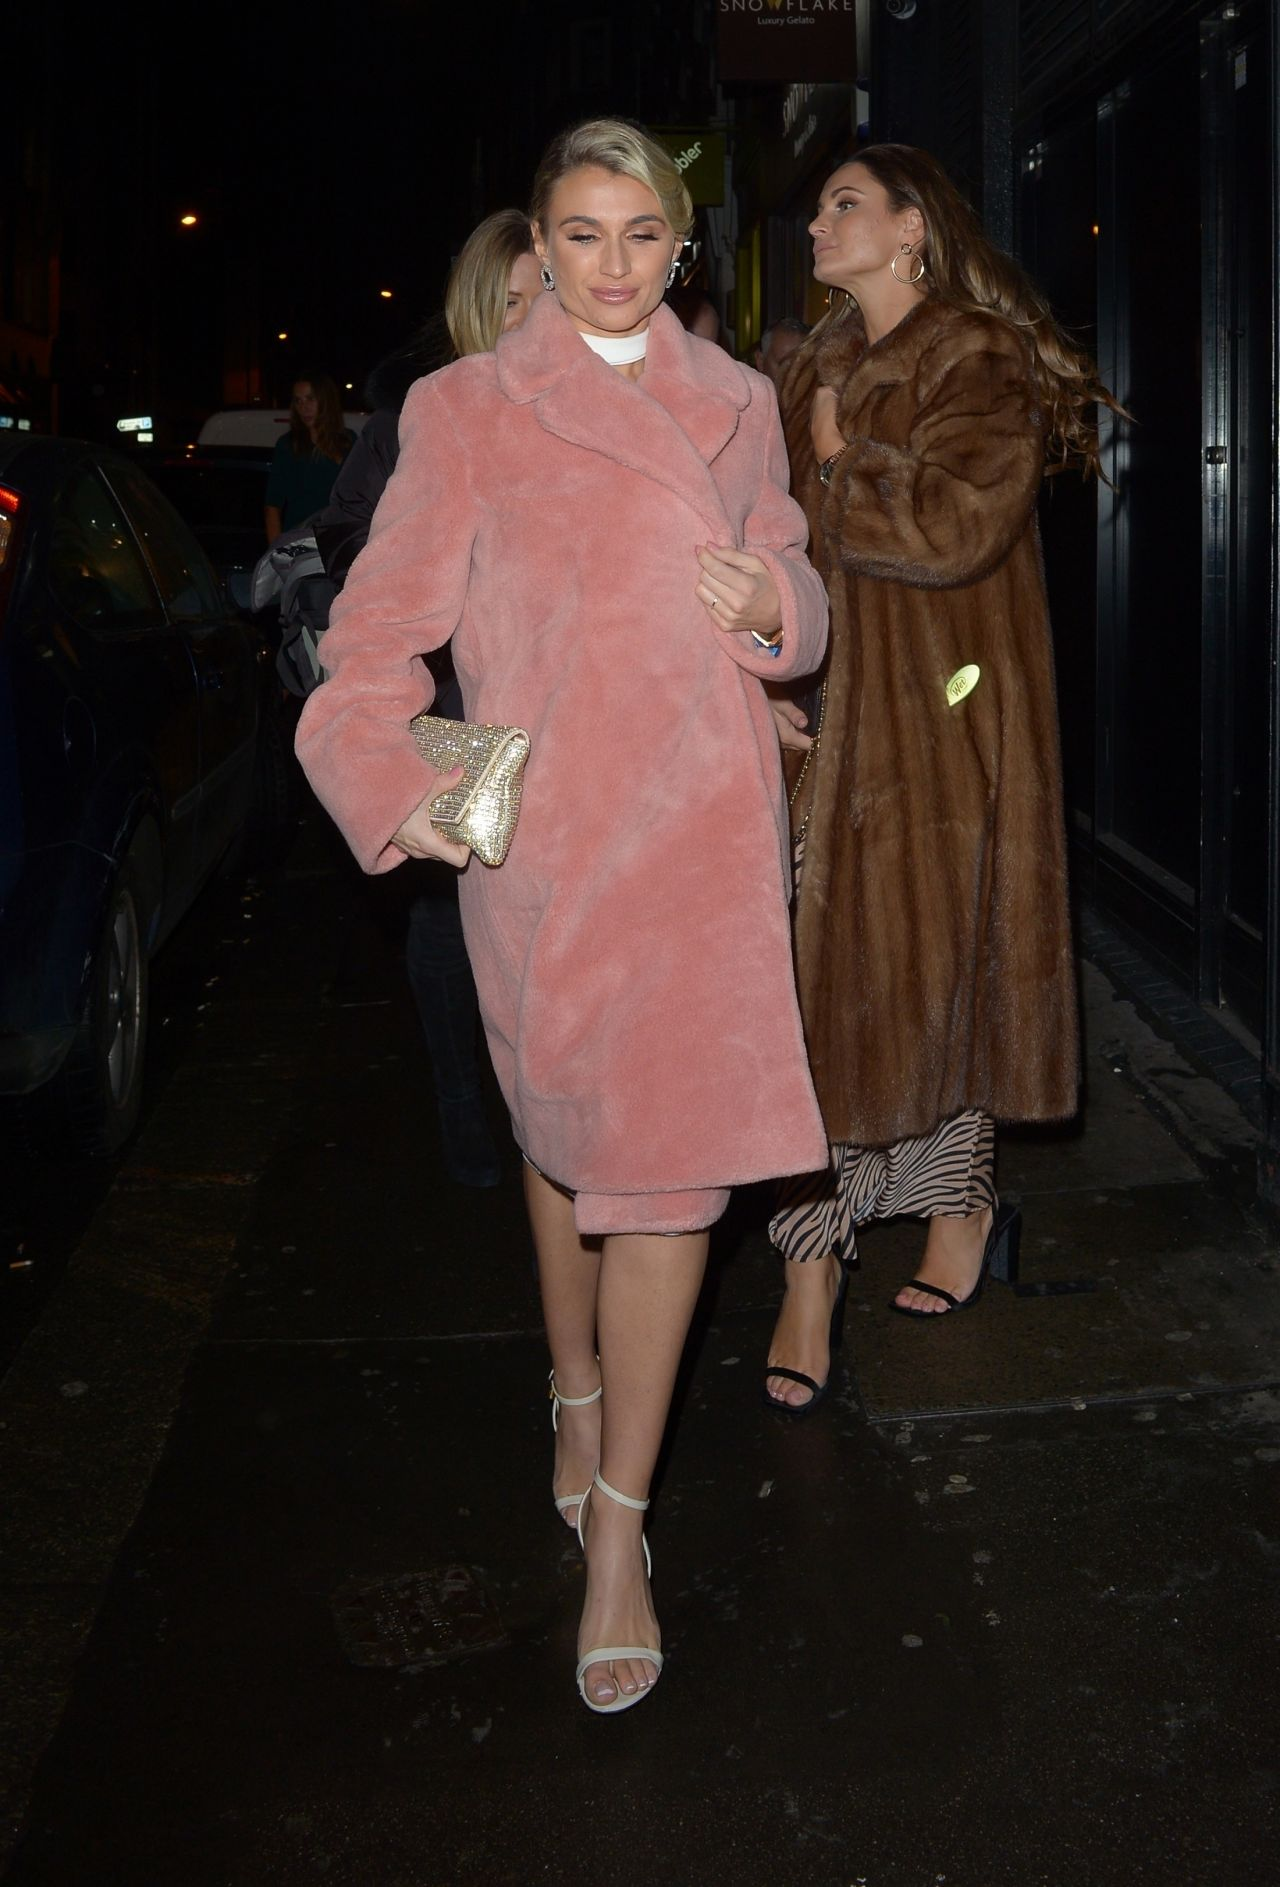 Billie Faiers And Sam Faiers Arriving At 100 Wardour In